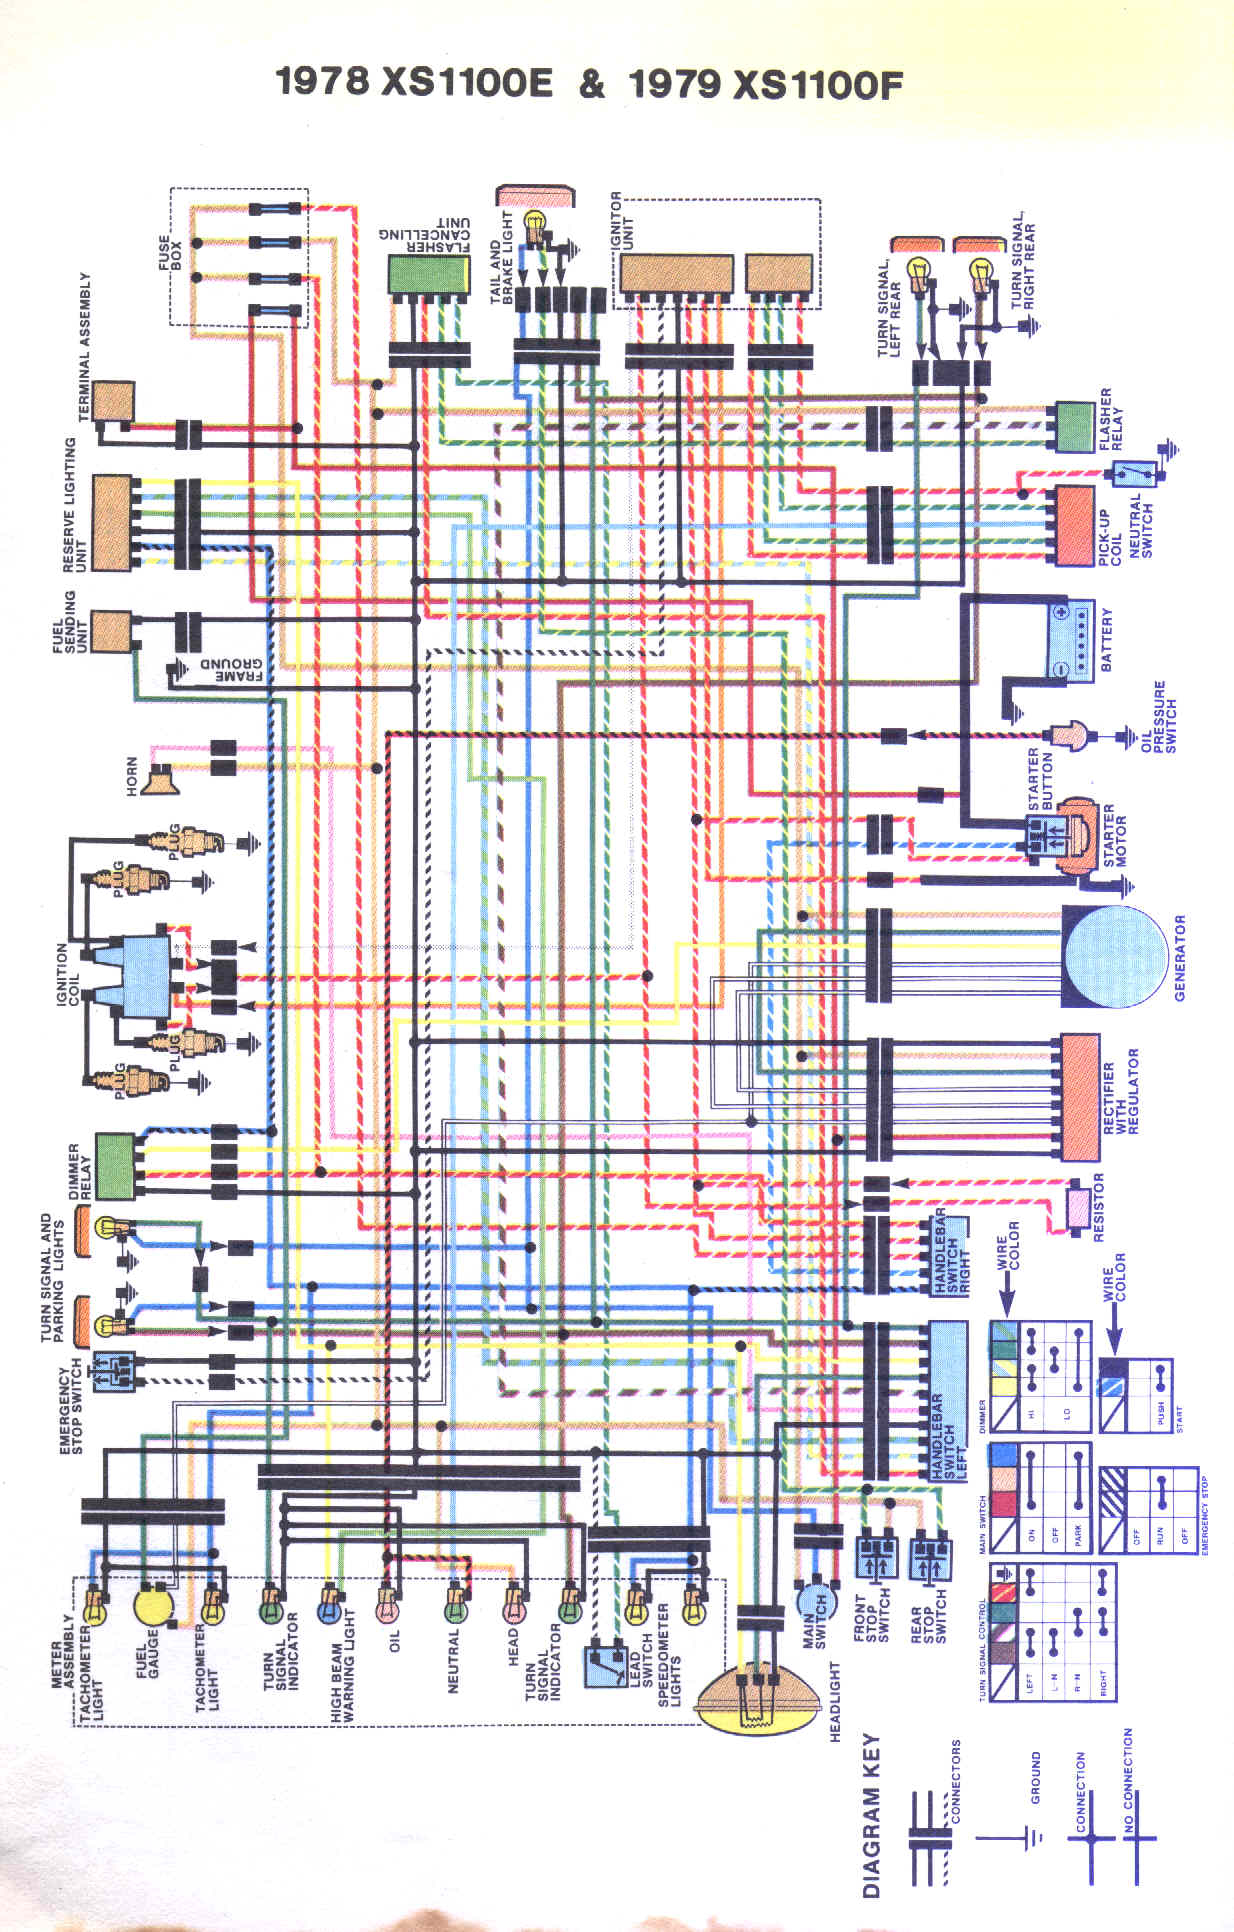 1979 firebird wiring diagram with 1981 Corvette Wiring Diagram on Location Of My Car By Vin Number On also 1964 Cadillac Fuse Box Cadillac Fuse Blow  e2 80 a2 Mifinder Co likewise 14112 together with Driveline as well 78 Trans Am Wiring Diagram.